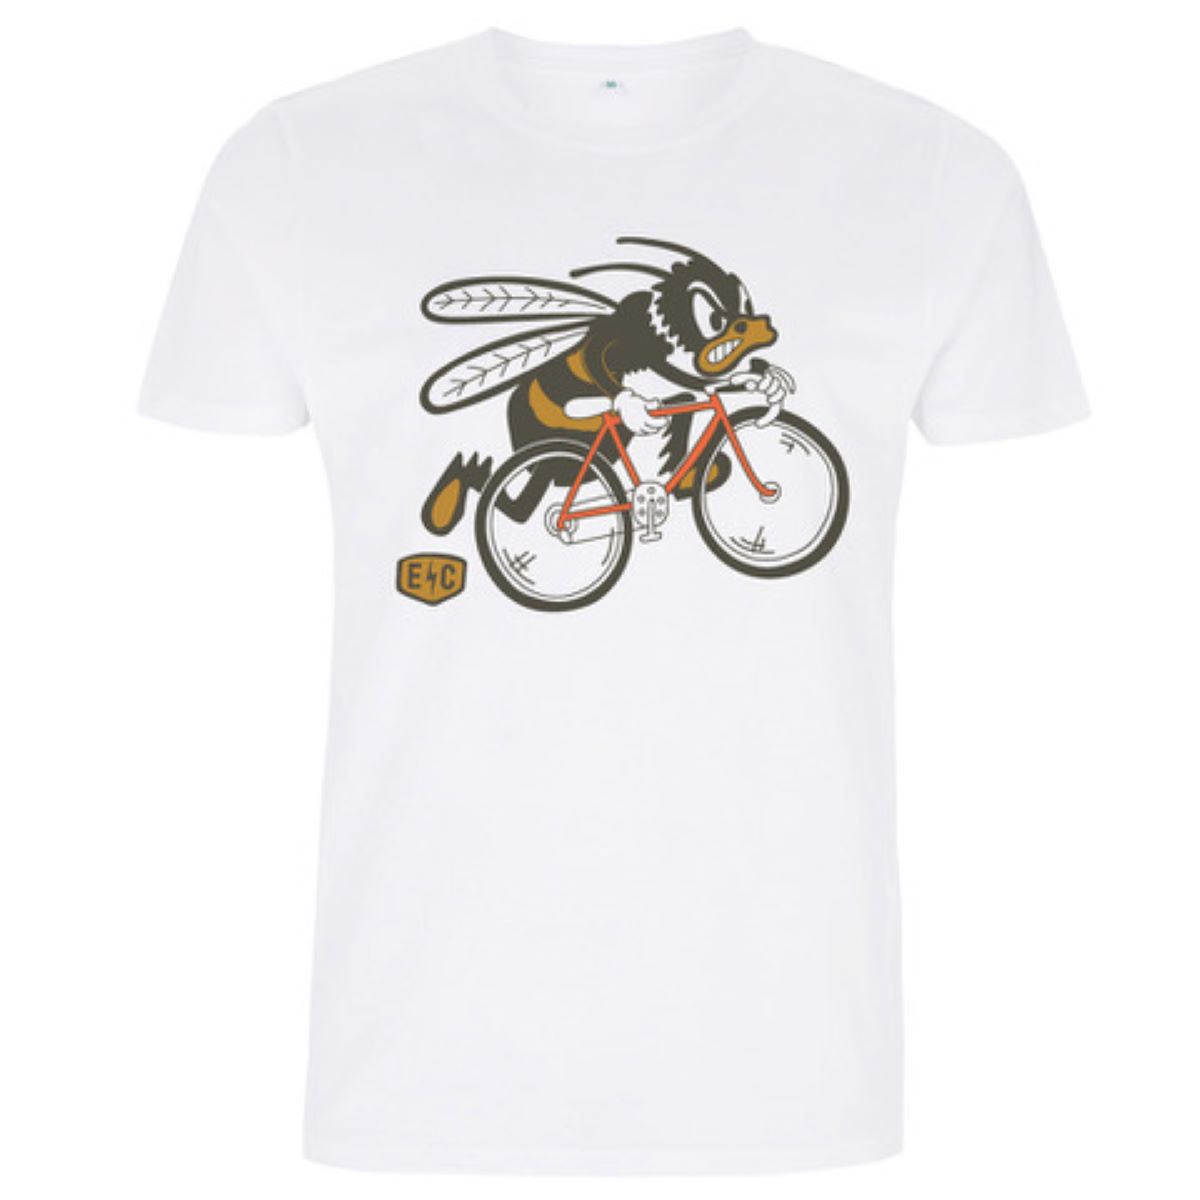 Endurance Conspiracy Bumble Cross T Shirt - Camisetas